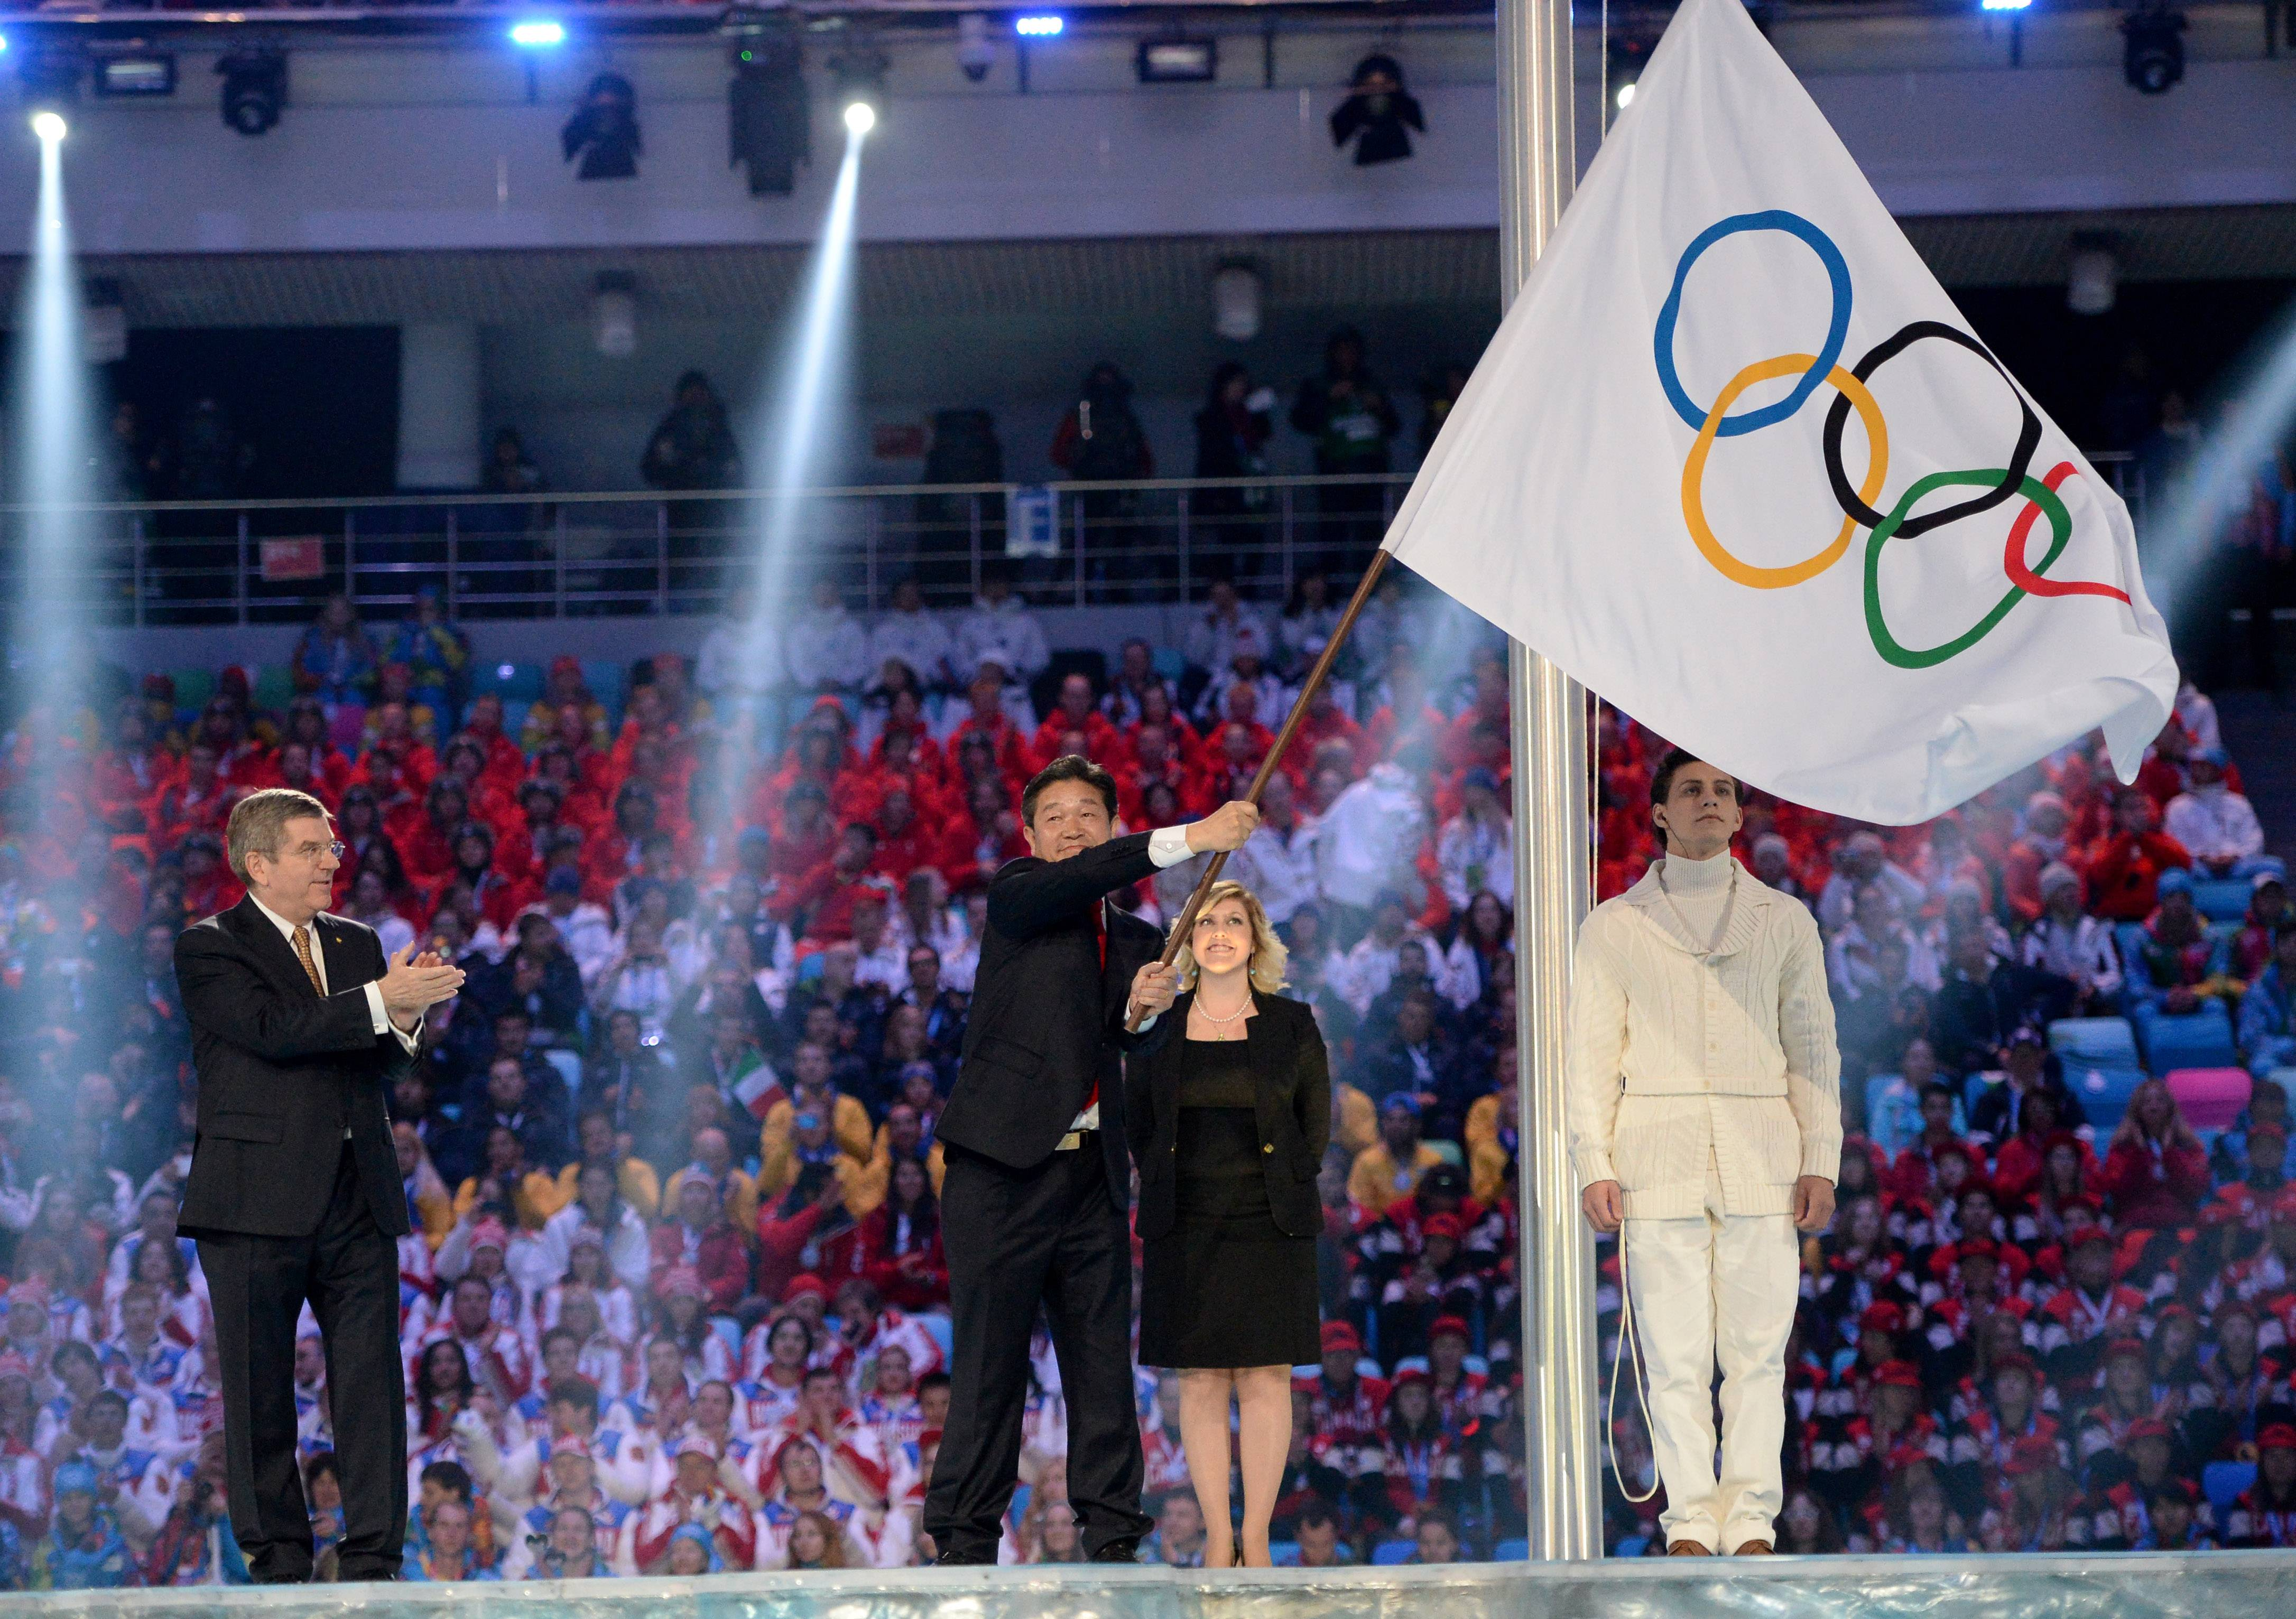 International Olympic Committee President Thomas Bach, left, applauds as Lee Seok-rai, mayor of Pyeongchang, waves the Olympic flag during the closing ceremony of the 2014 Winter Olympics, Sunday, Feb. 23, 2014, in Sochi, Russia.